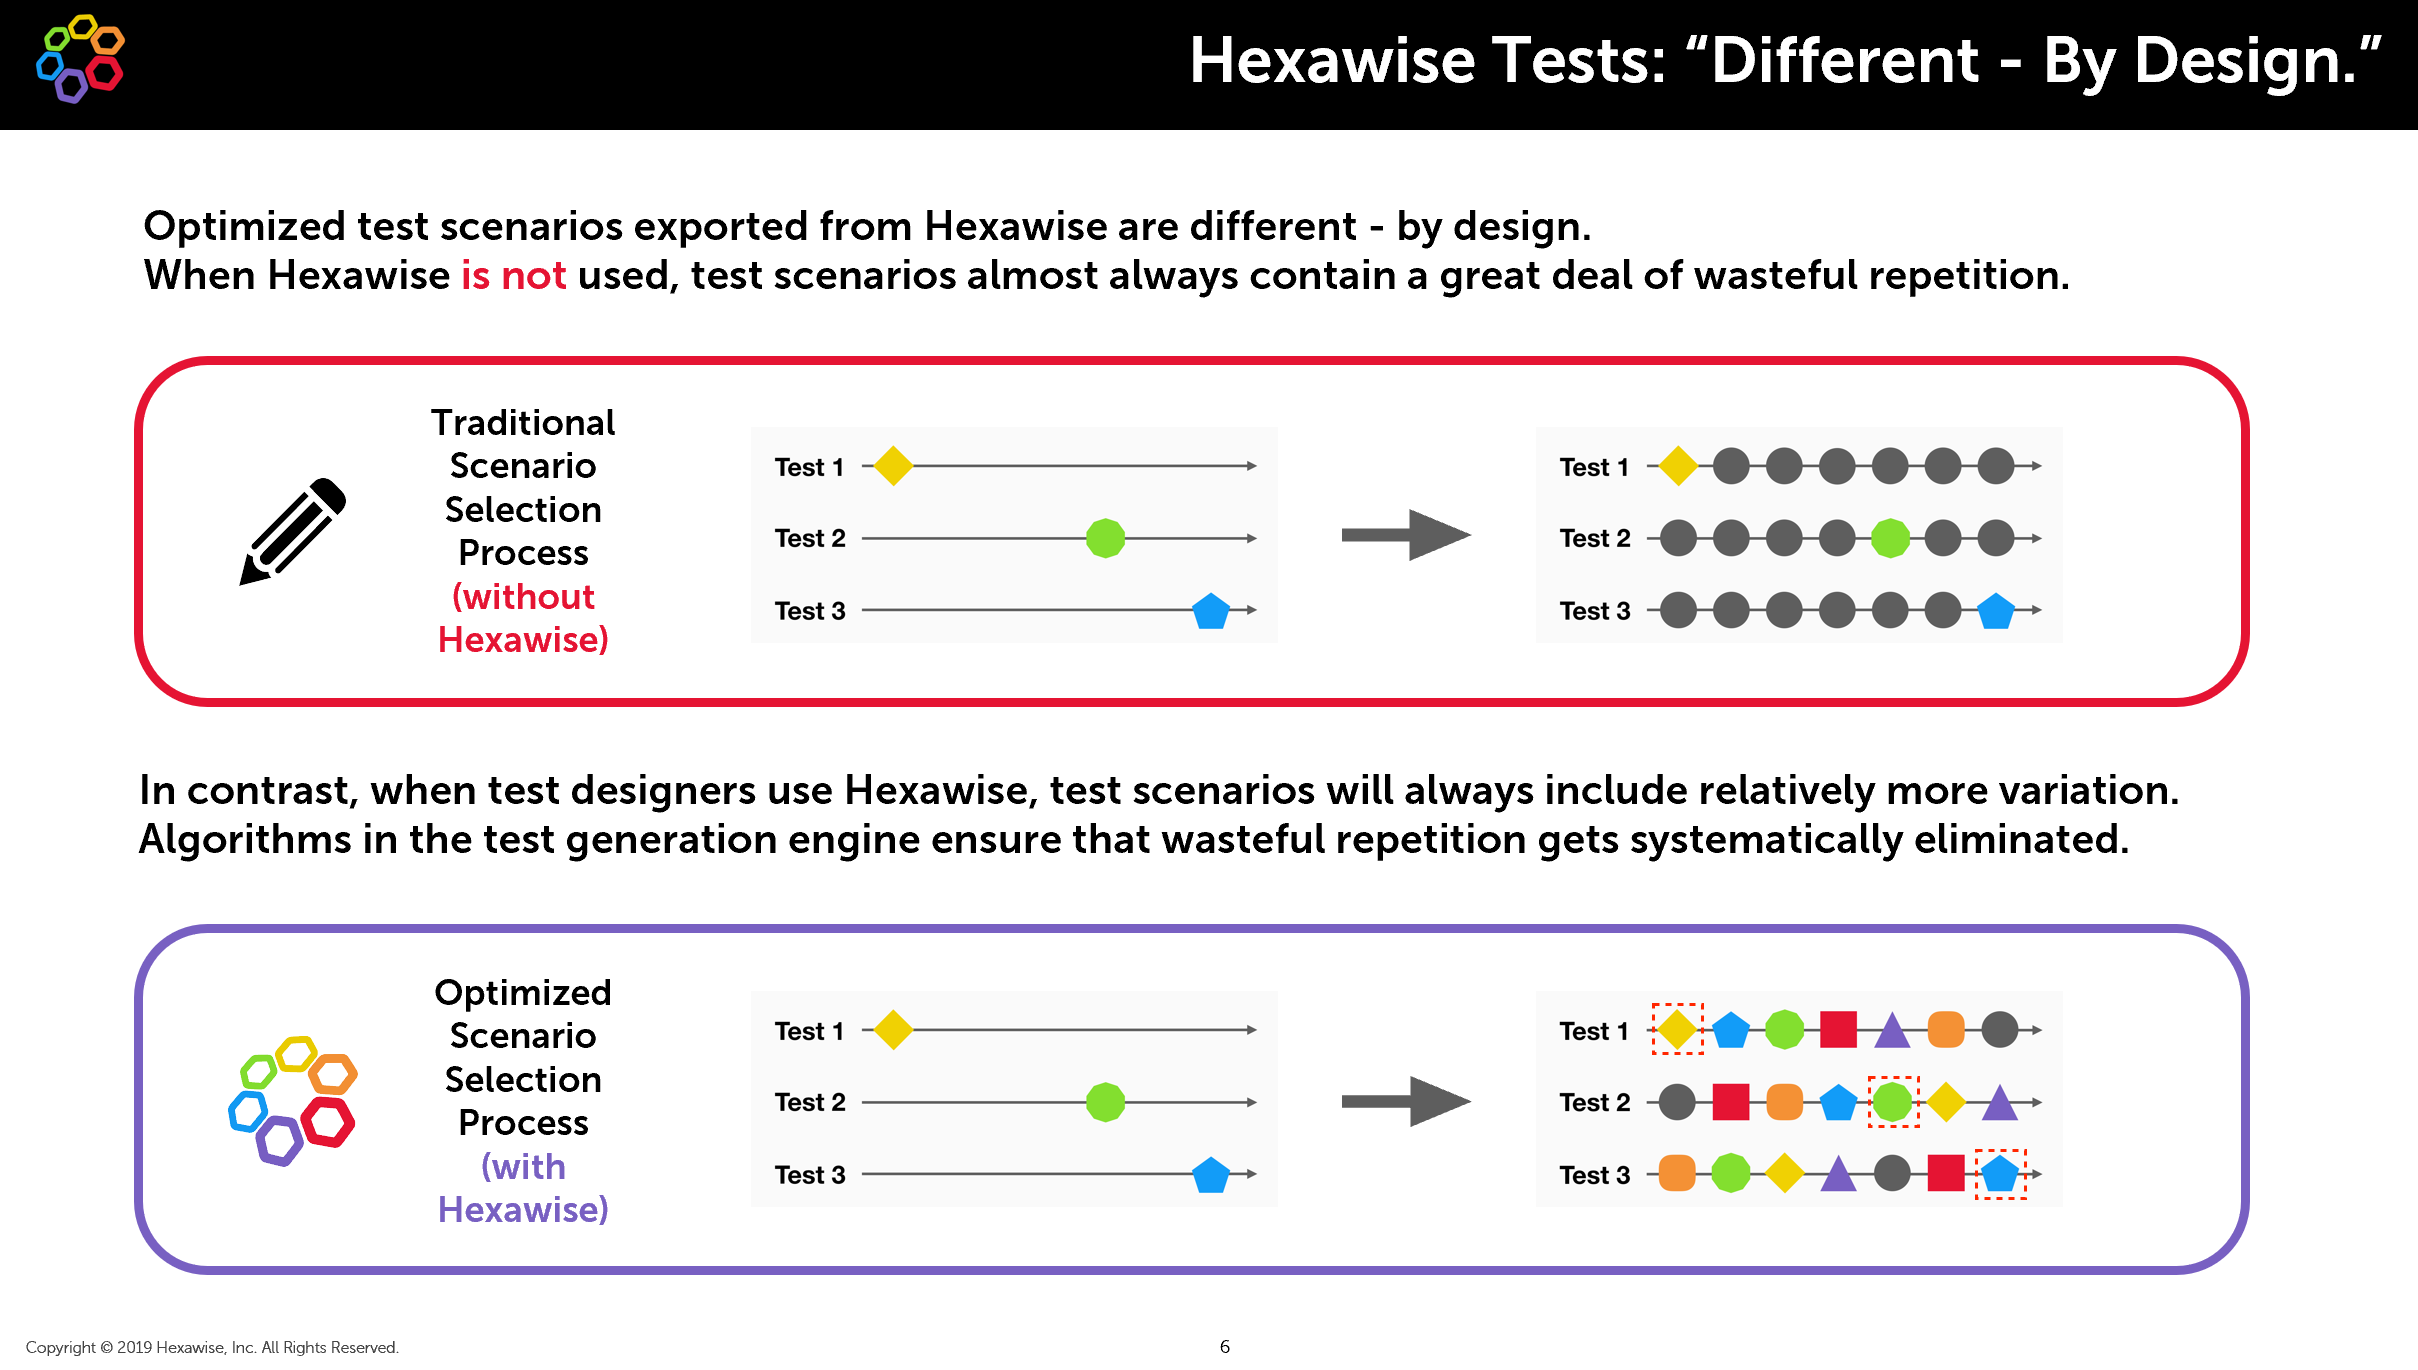 image showing variation included in Hexawise tests